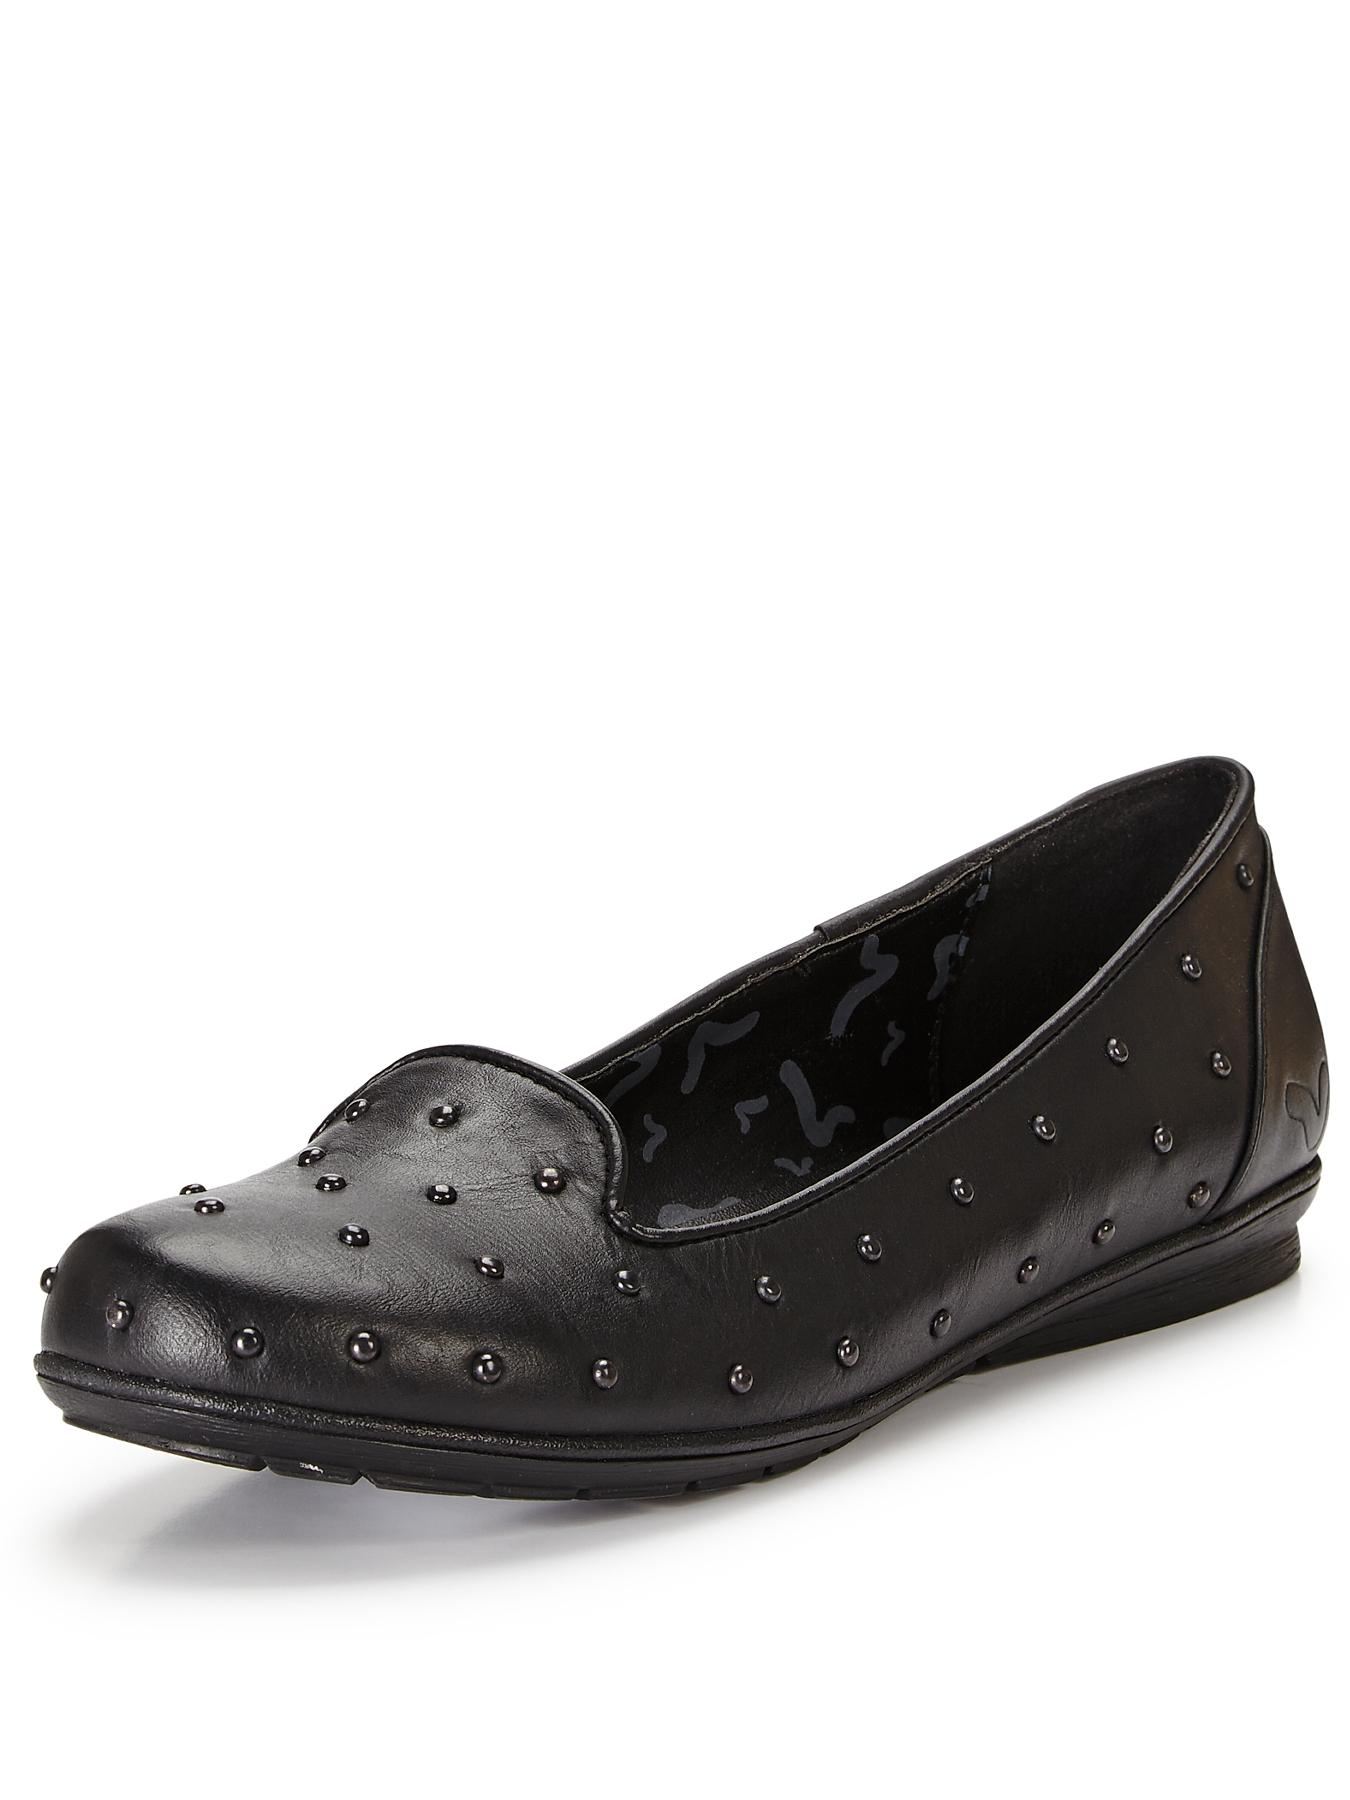 Fion Flat Tab Shoes, Black